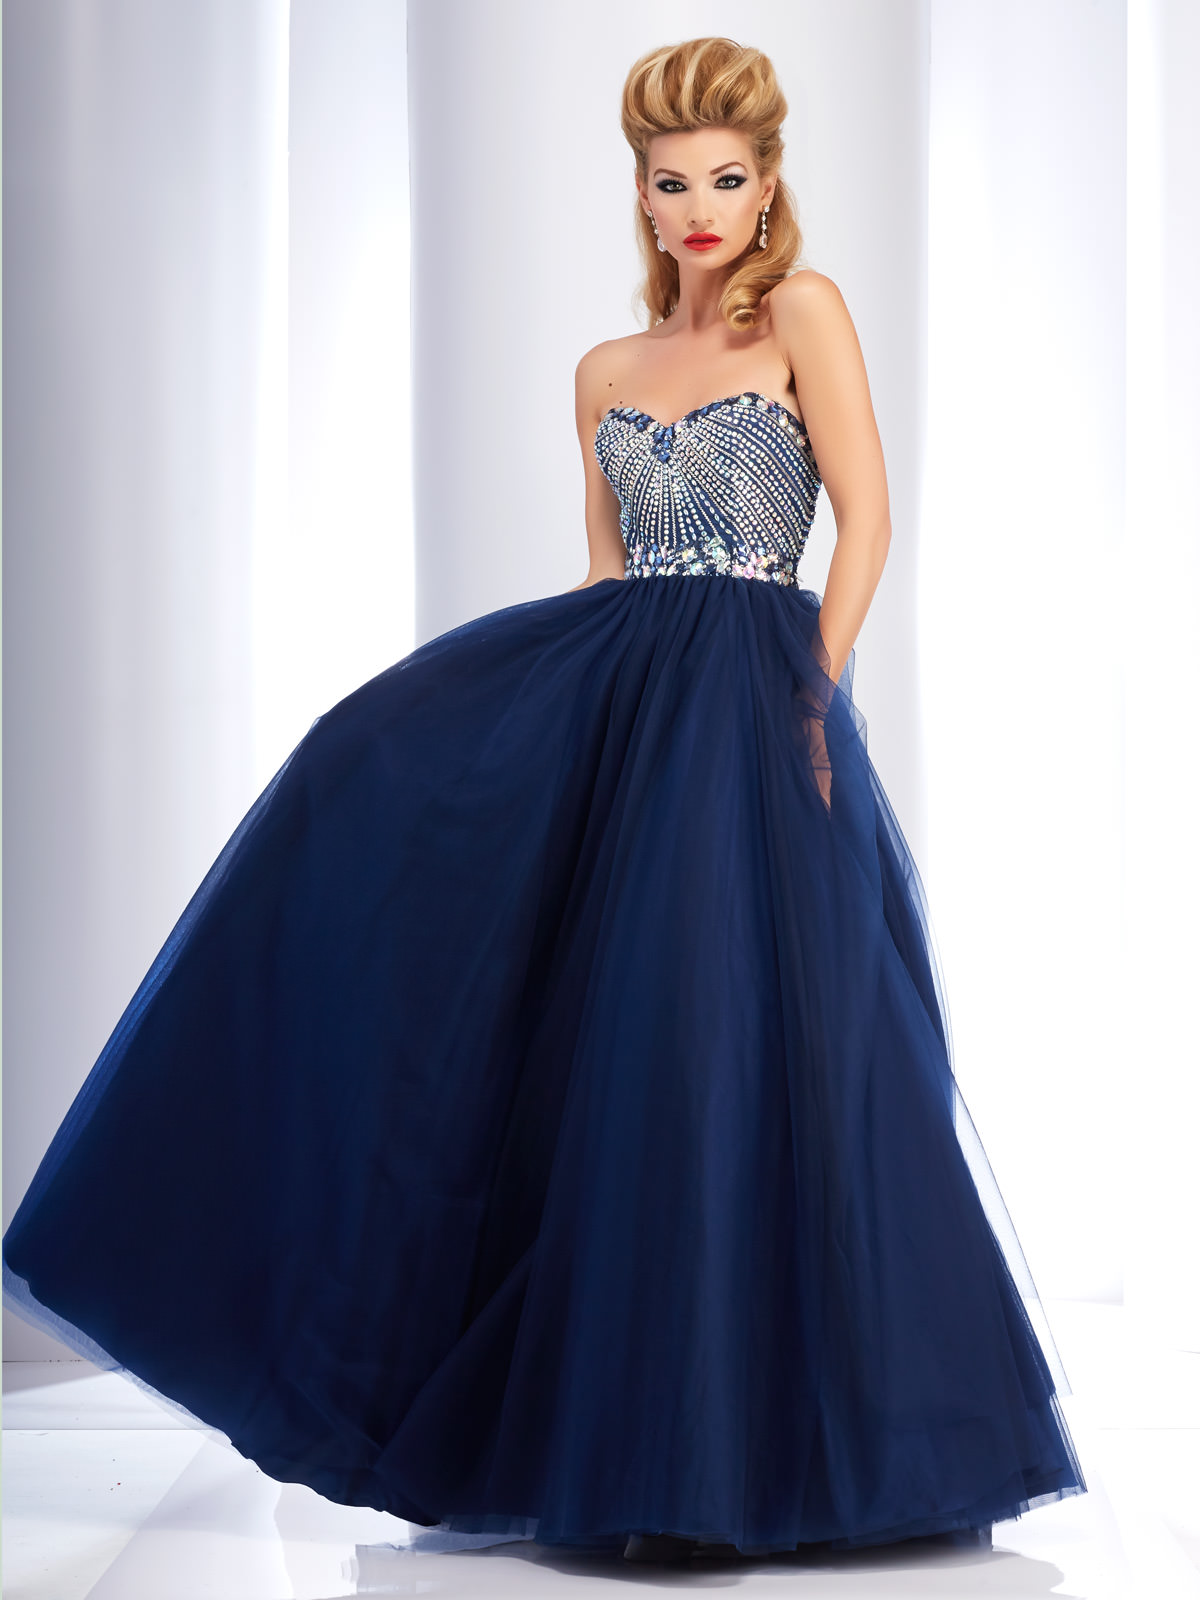 Prom Dresses Looking for in NY